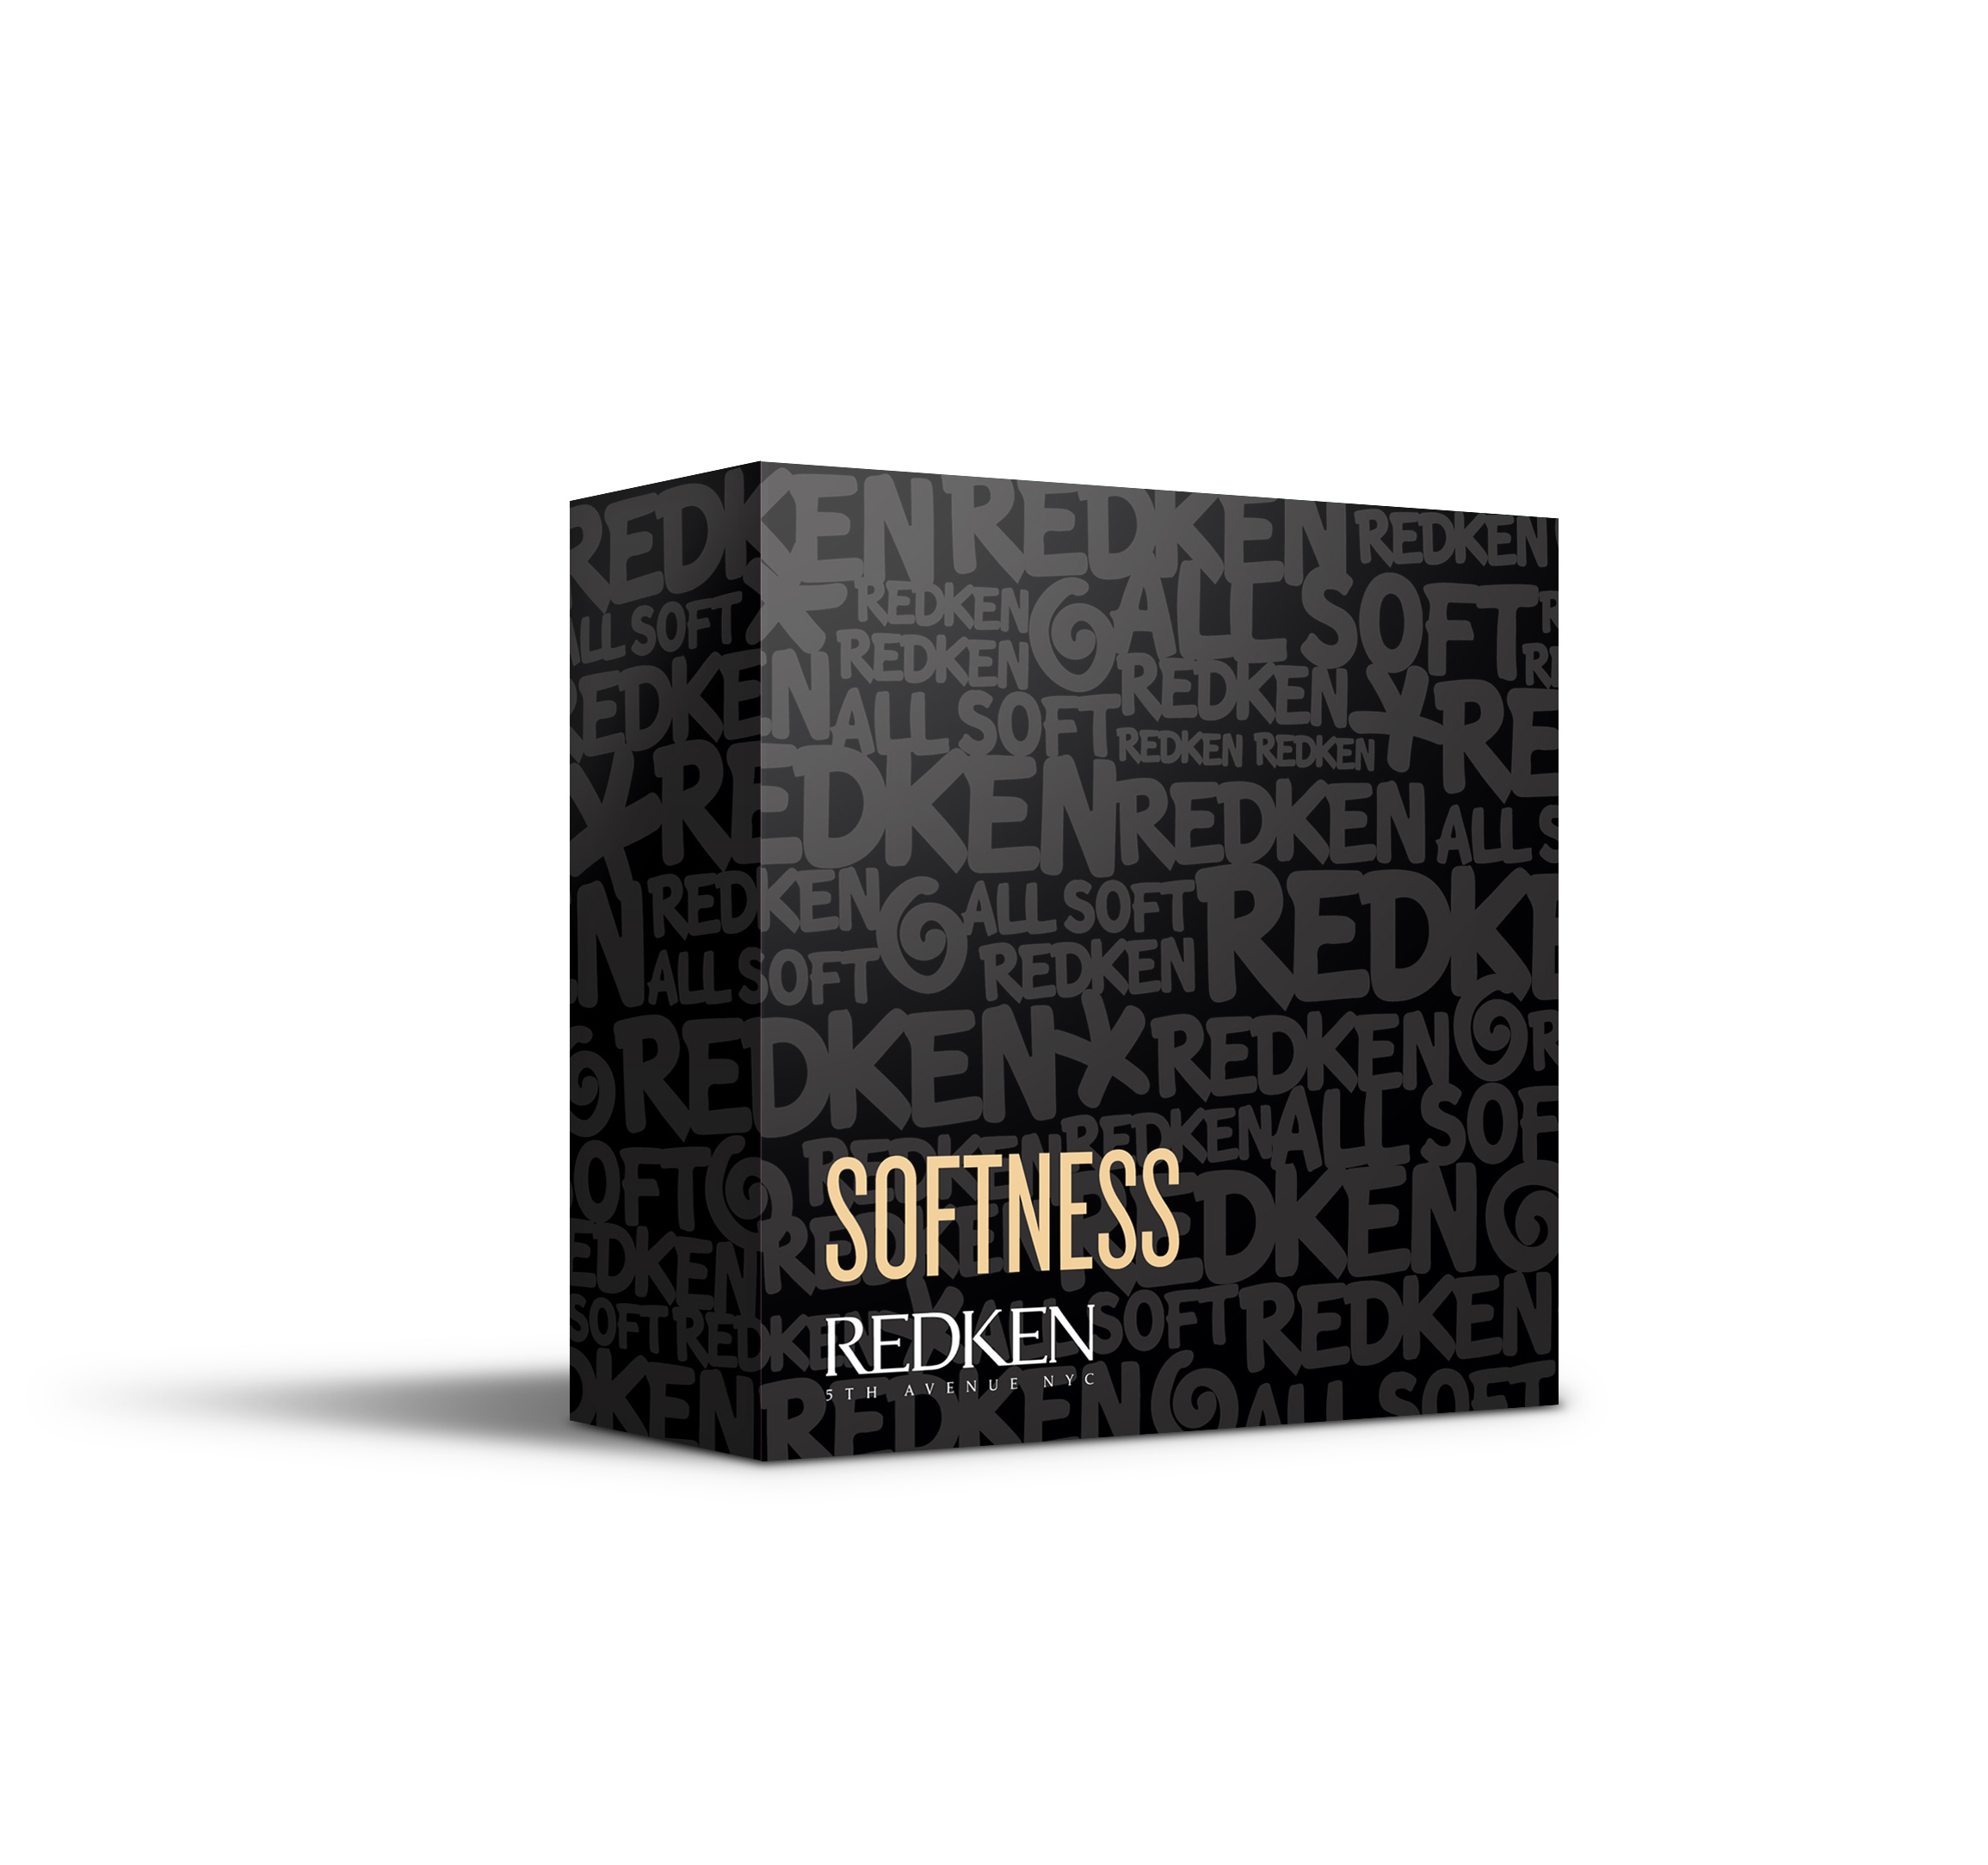 Redken Gift Pack Softness